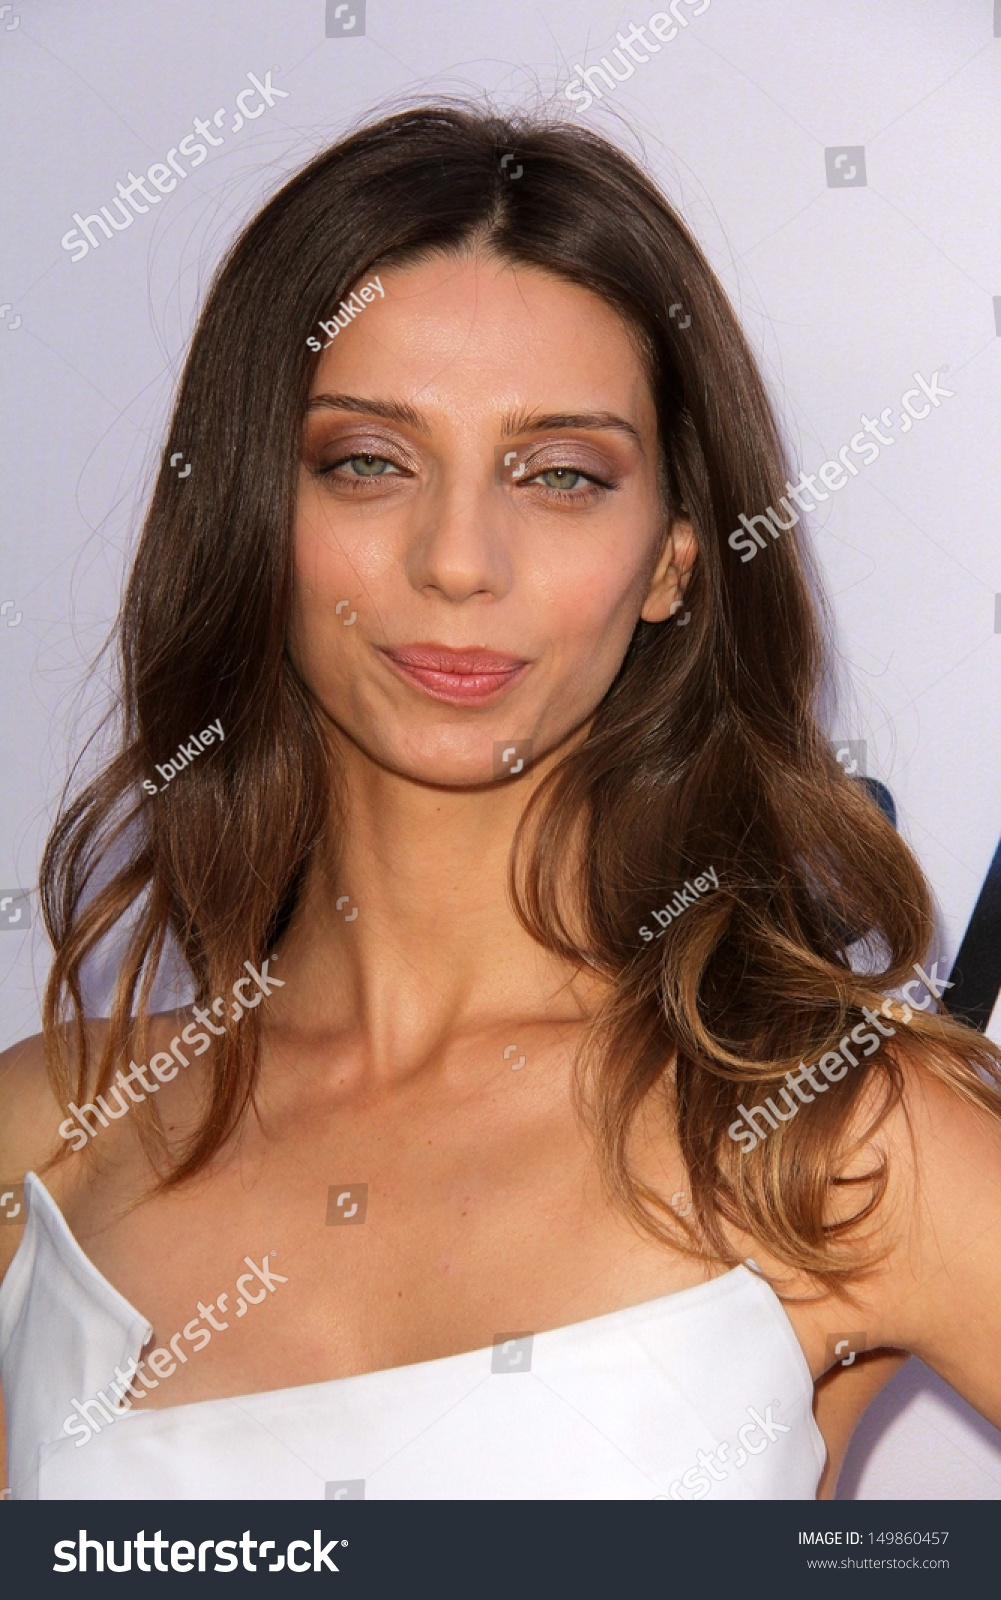 Celebrity Angela Sarafyan nudes (18 foto and video), Sexy, Paparazzi, Instagram, butt 2020